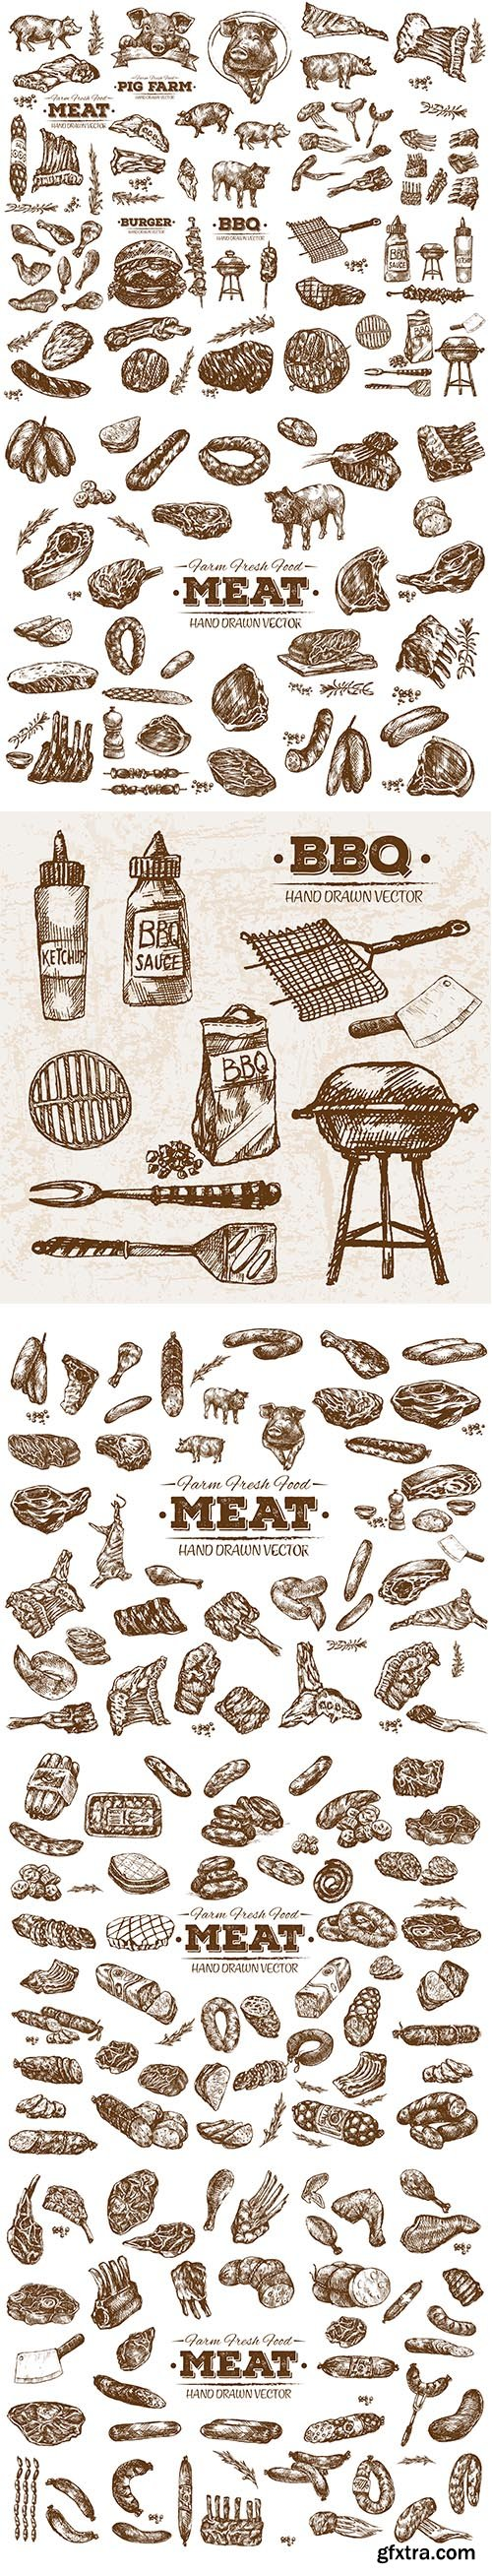 Hand-Drawn Meat Collection